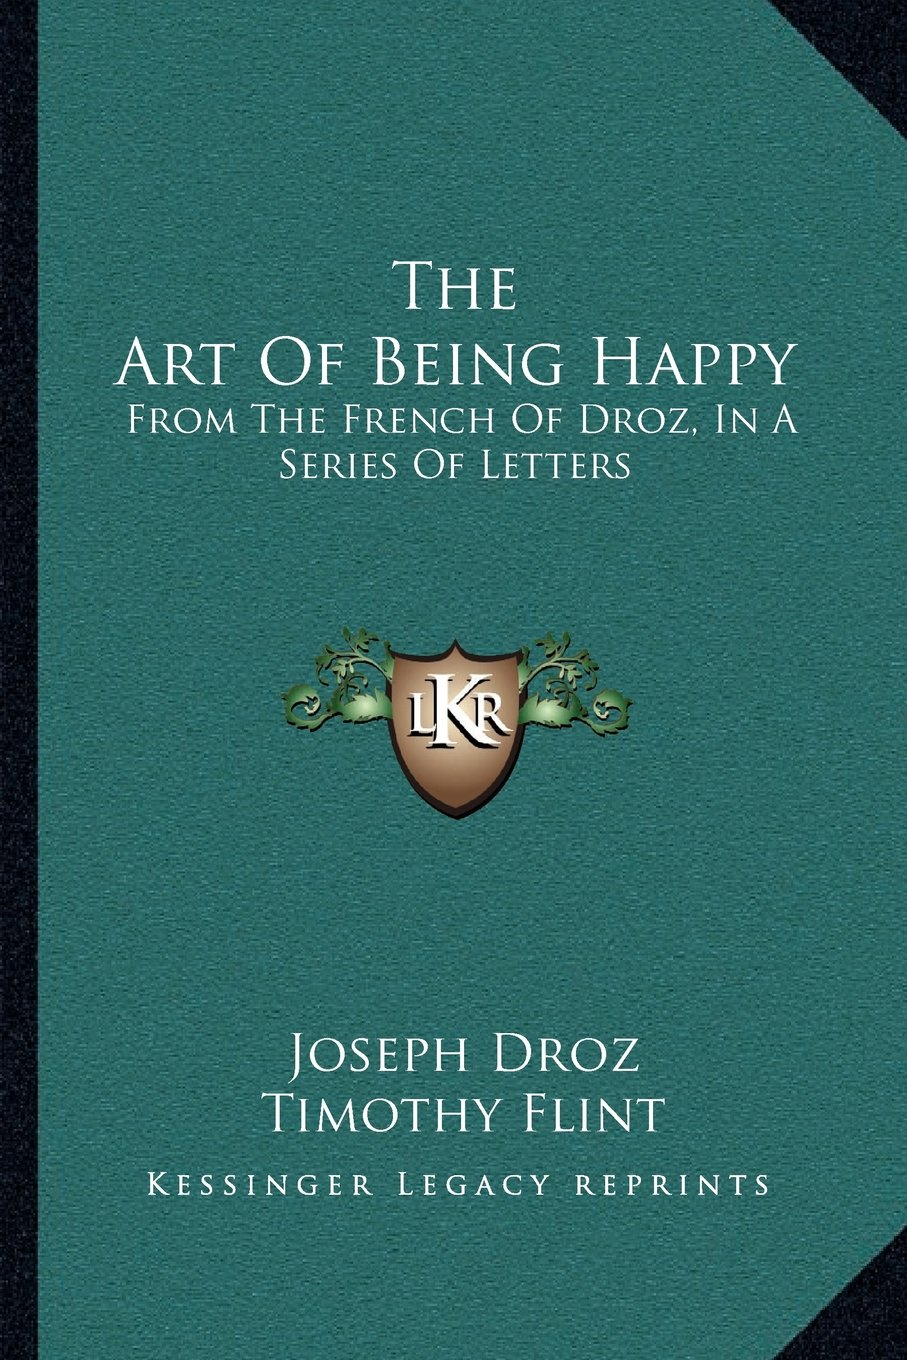 Download The Art Of Being Happy: From The French Of Droz, In A Series Of Letters pdf epub